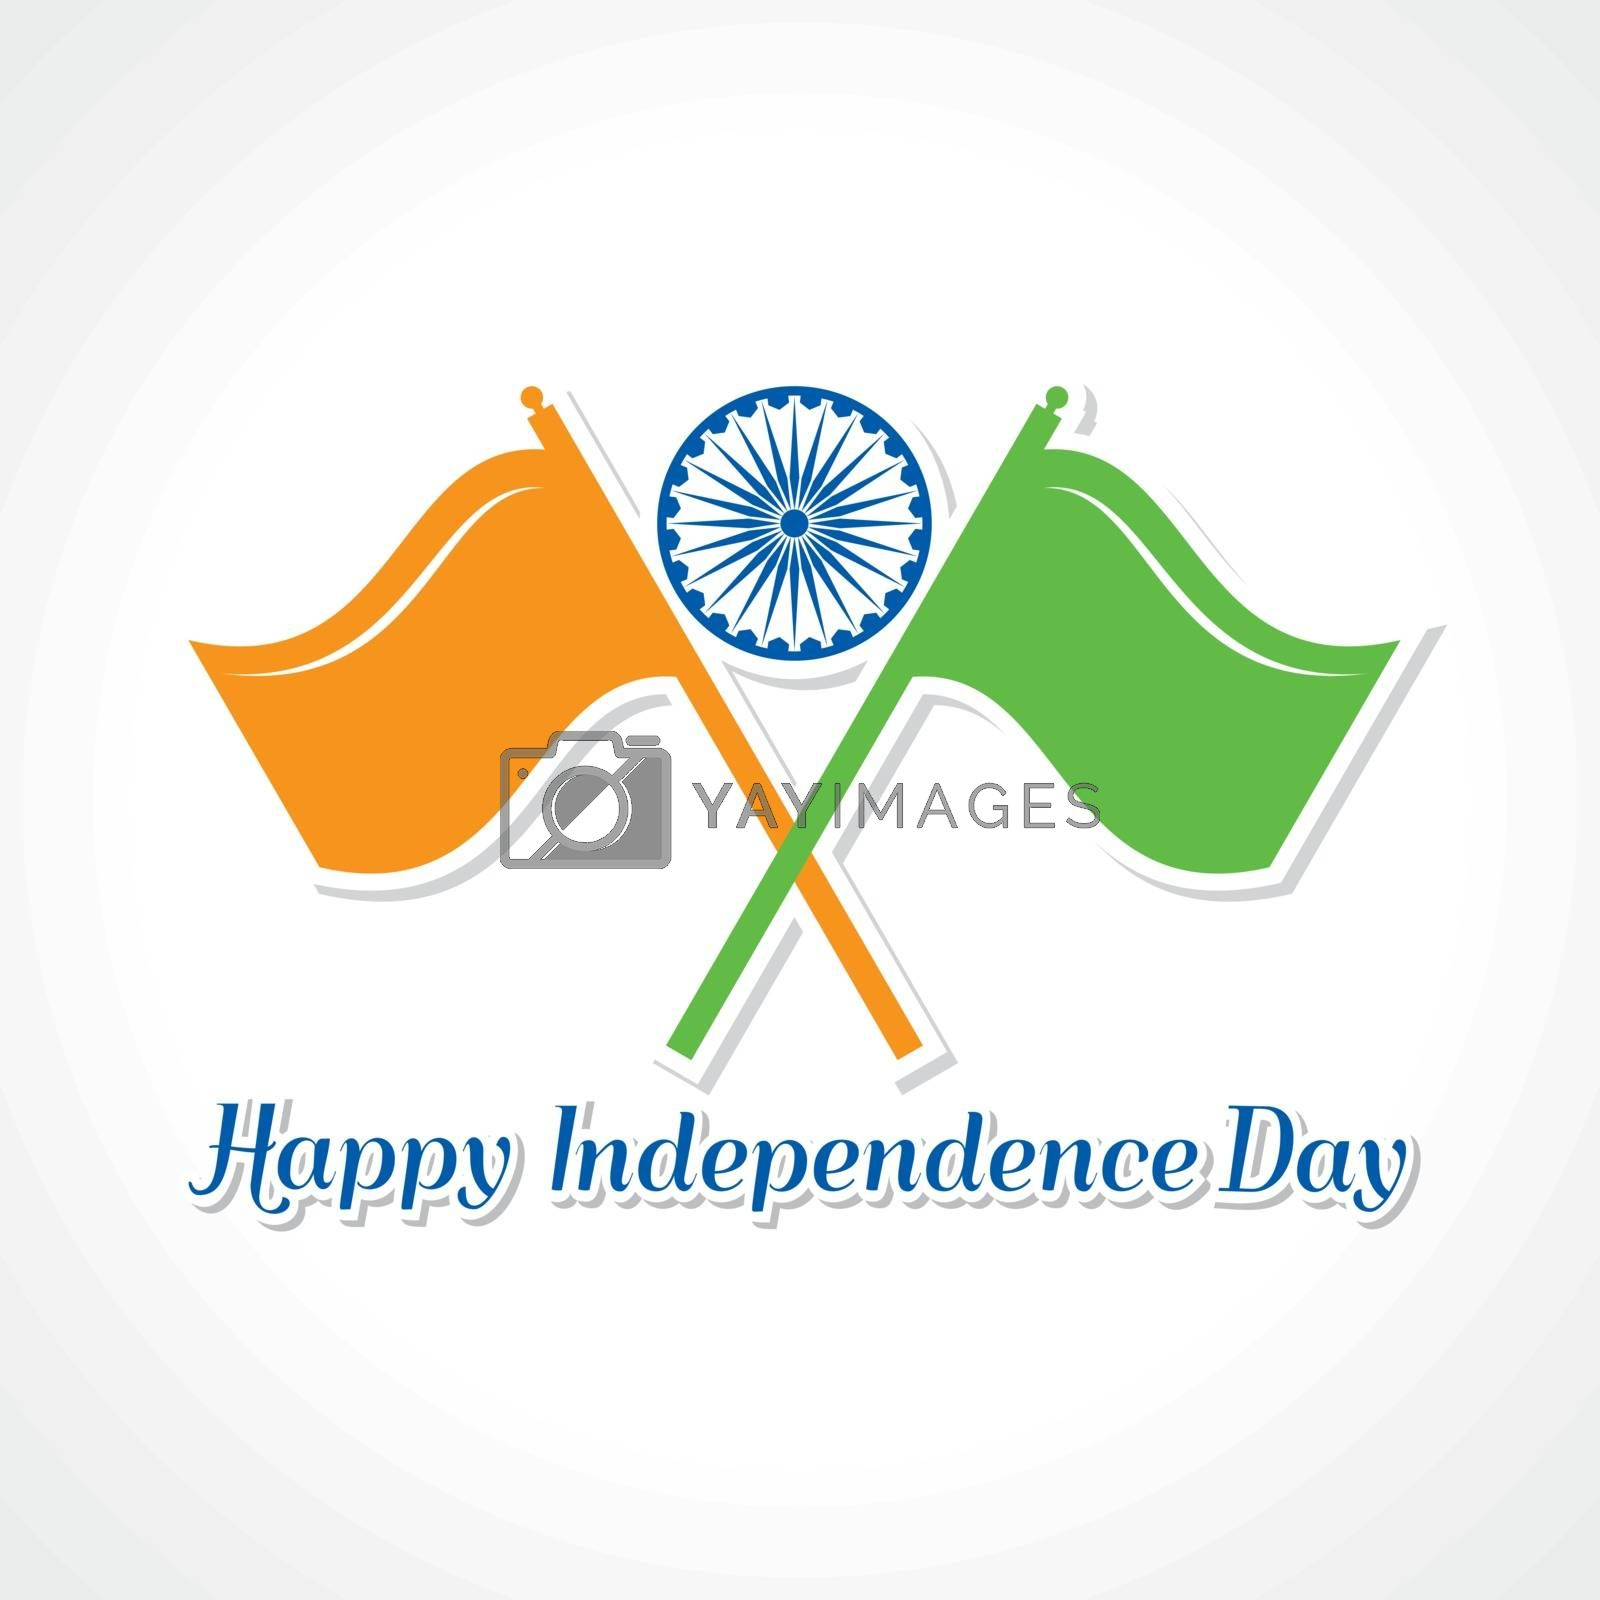 Royalty free image of Happy independence day greeting card by graphicsdunia4you